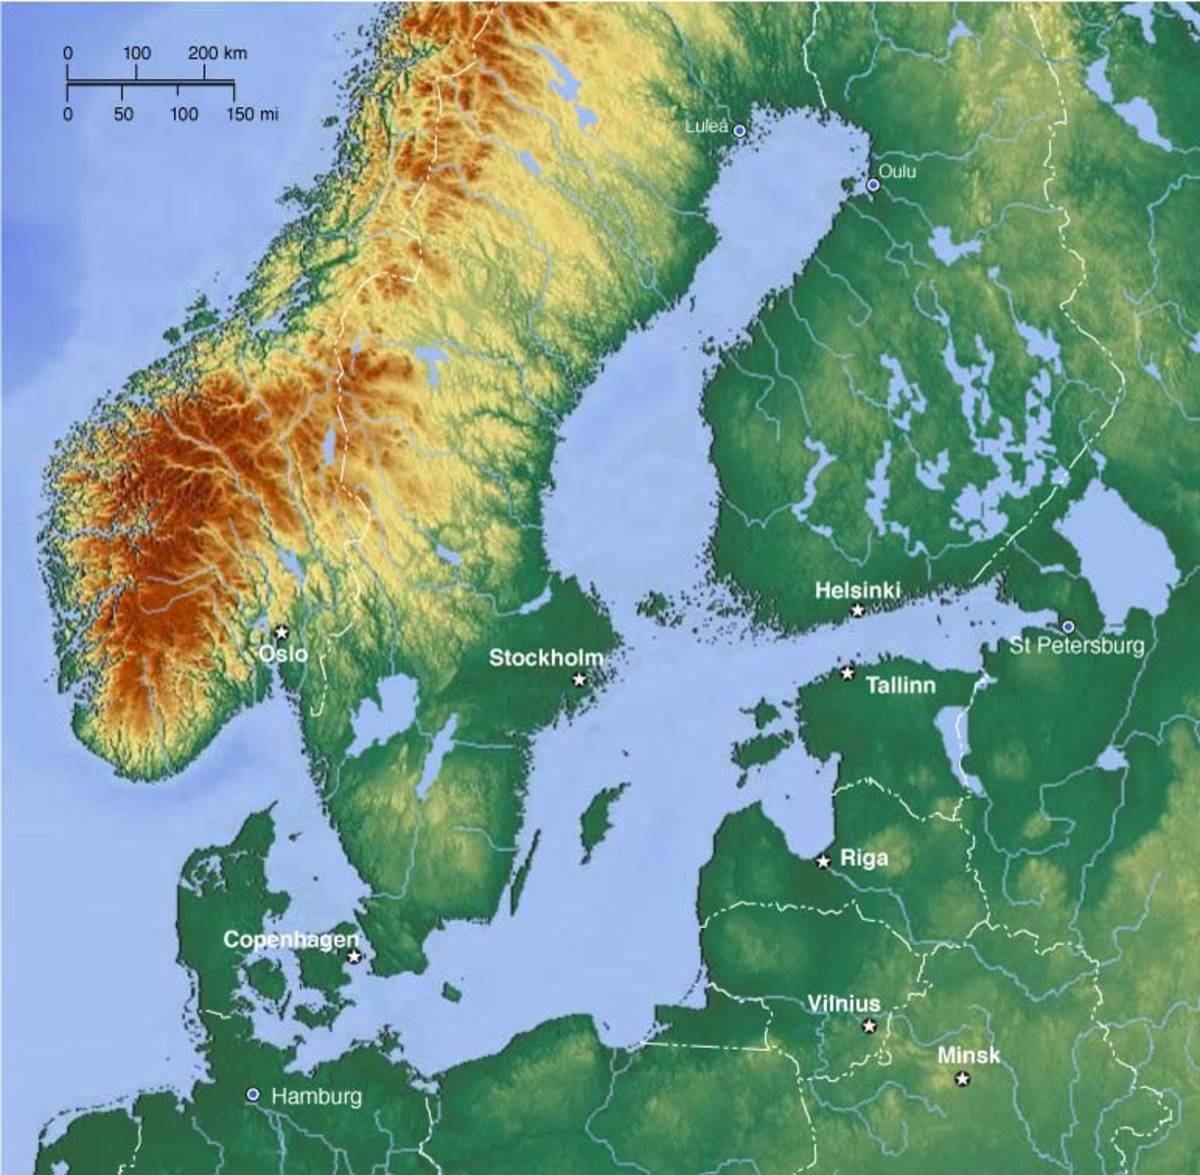 Topographic map of Scandinavia and the Baltic region